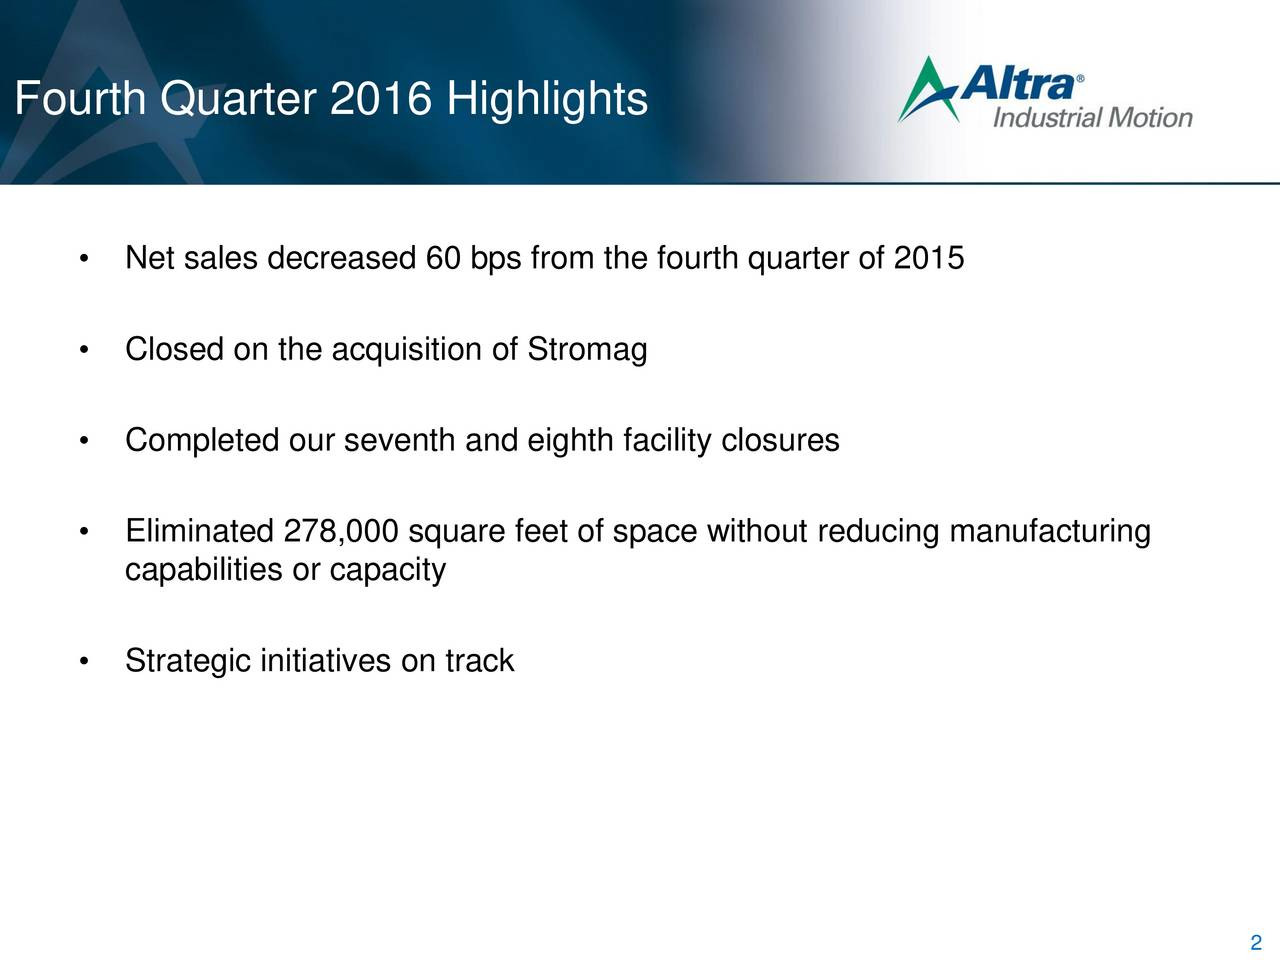 Net sales decreased 60 bps from the fourth quarter of 2015 Closed on the acquisition of Stromag Completed our seventh and eighth facility closures Eliminated 278,000 square feet of space without reducing manufacturing capabilities or capacity Strategic initiatives on track